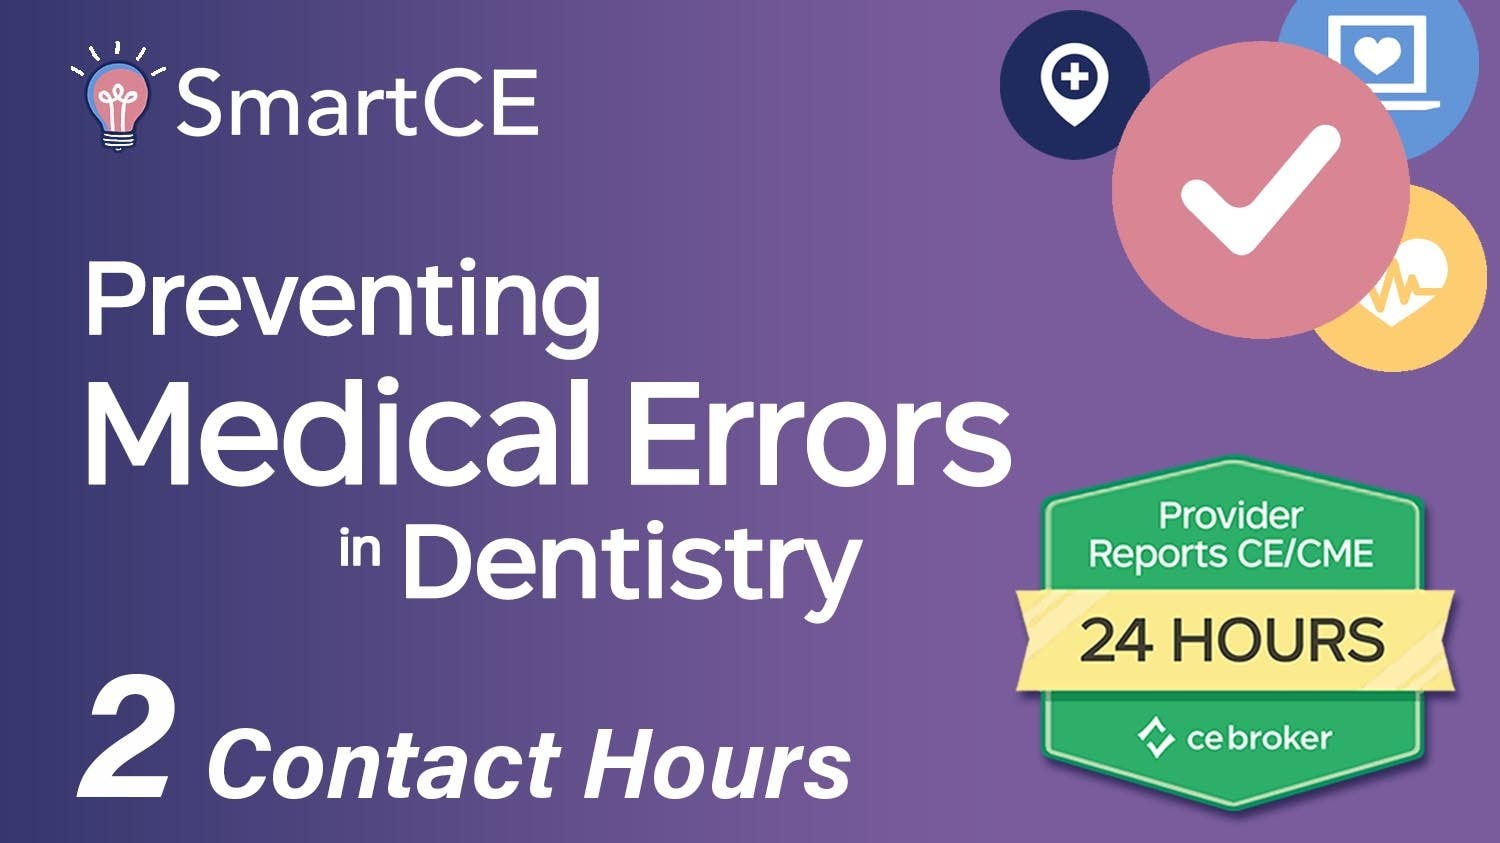 Preventing Medical Errors in Dentistry - 2 Contact Hours/20-686697